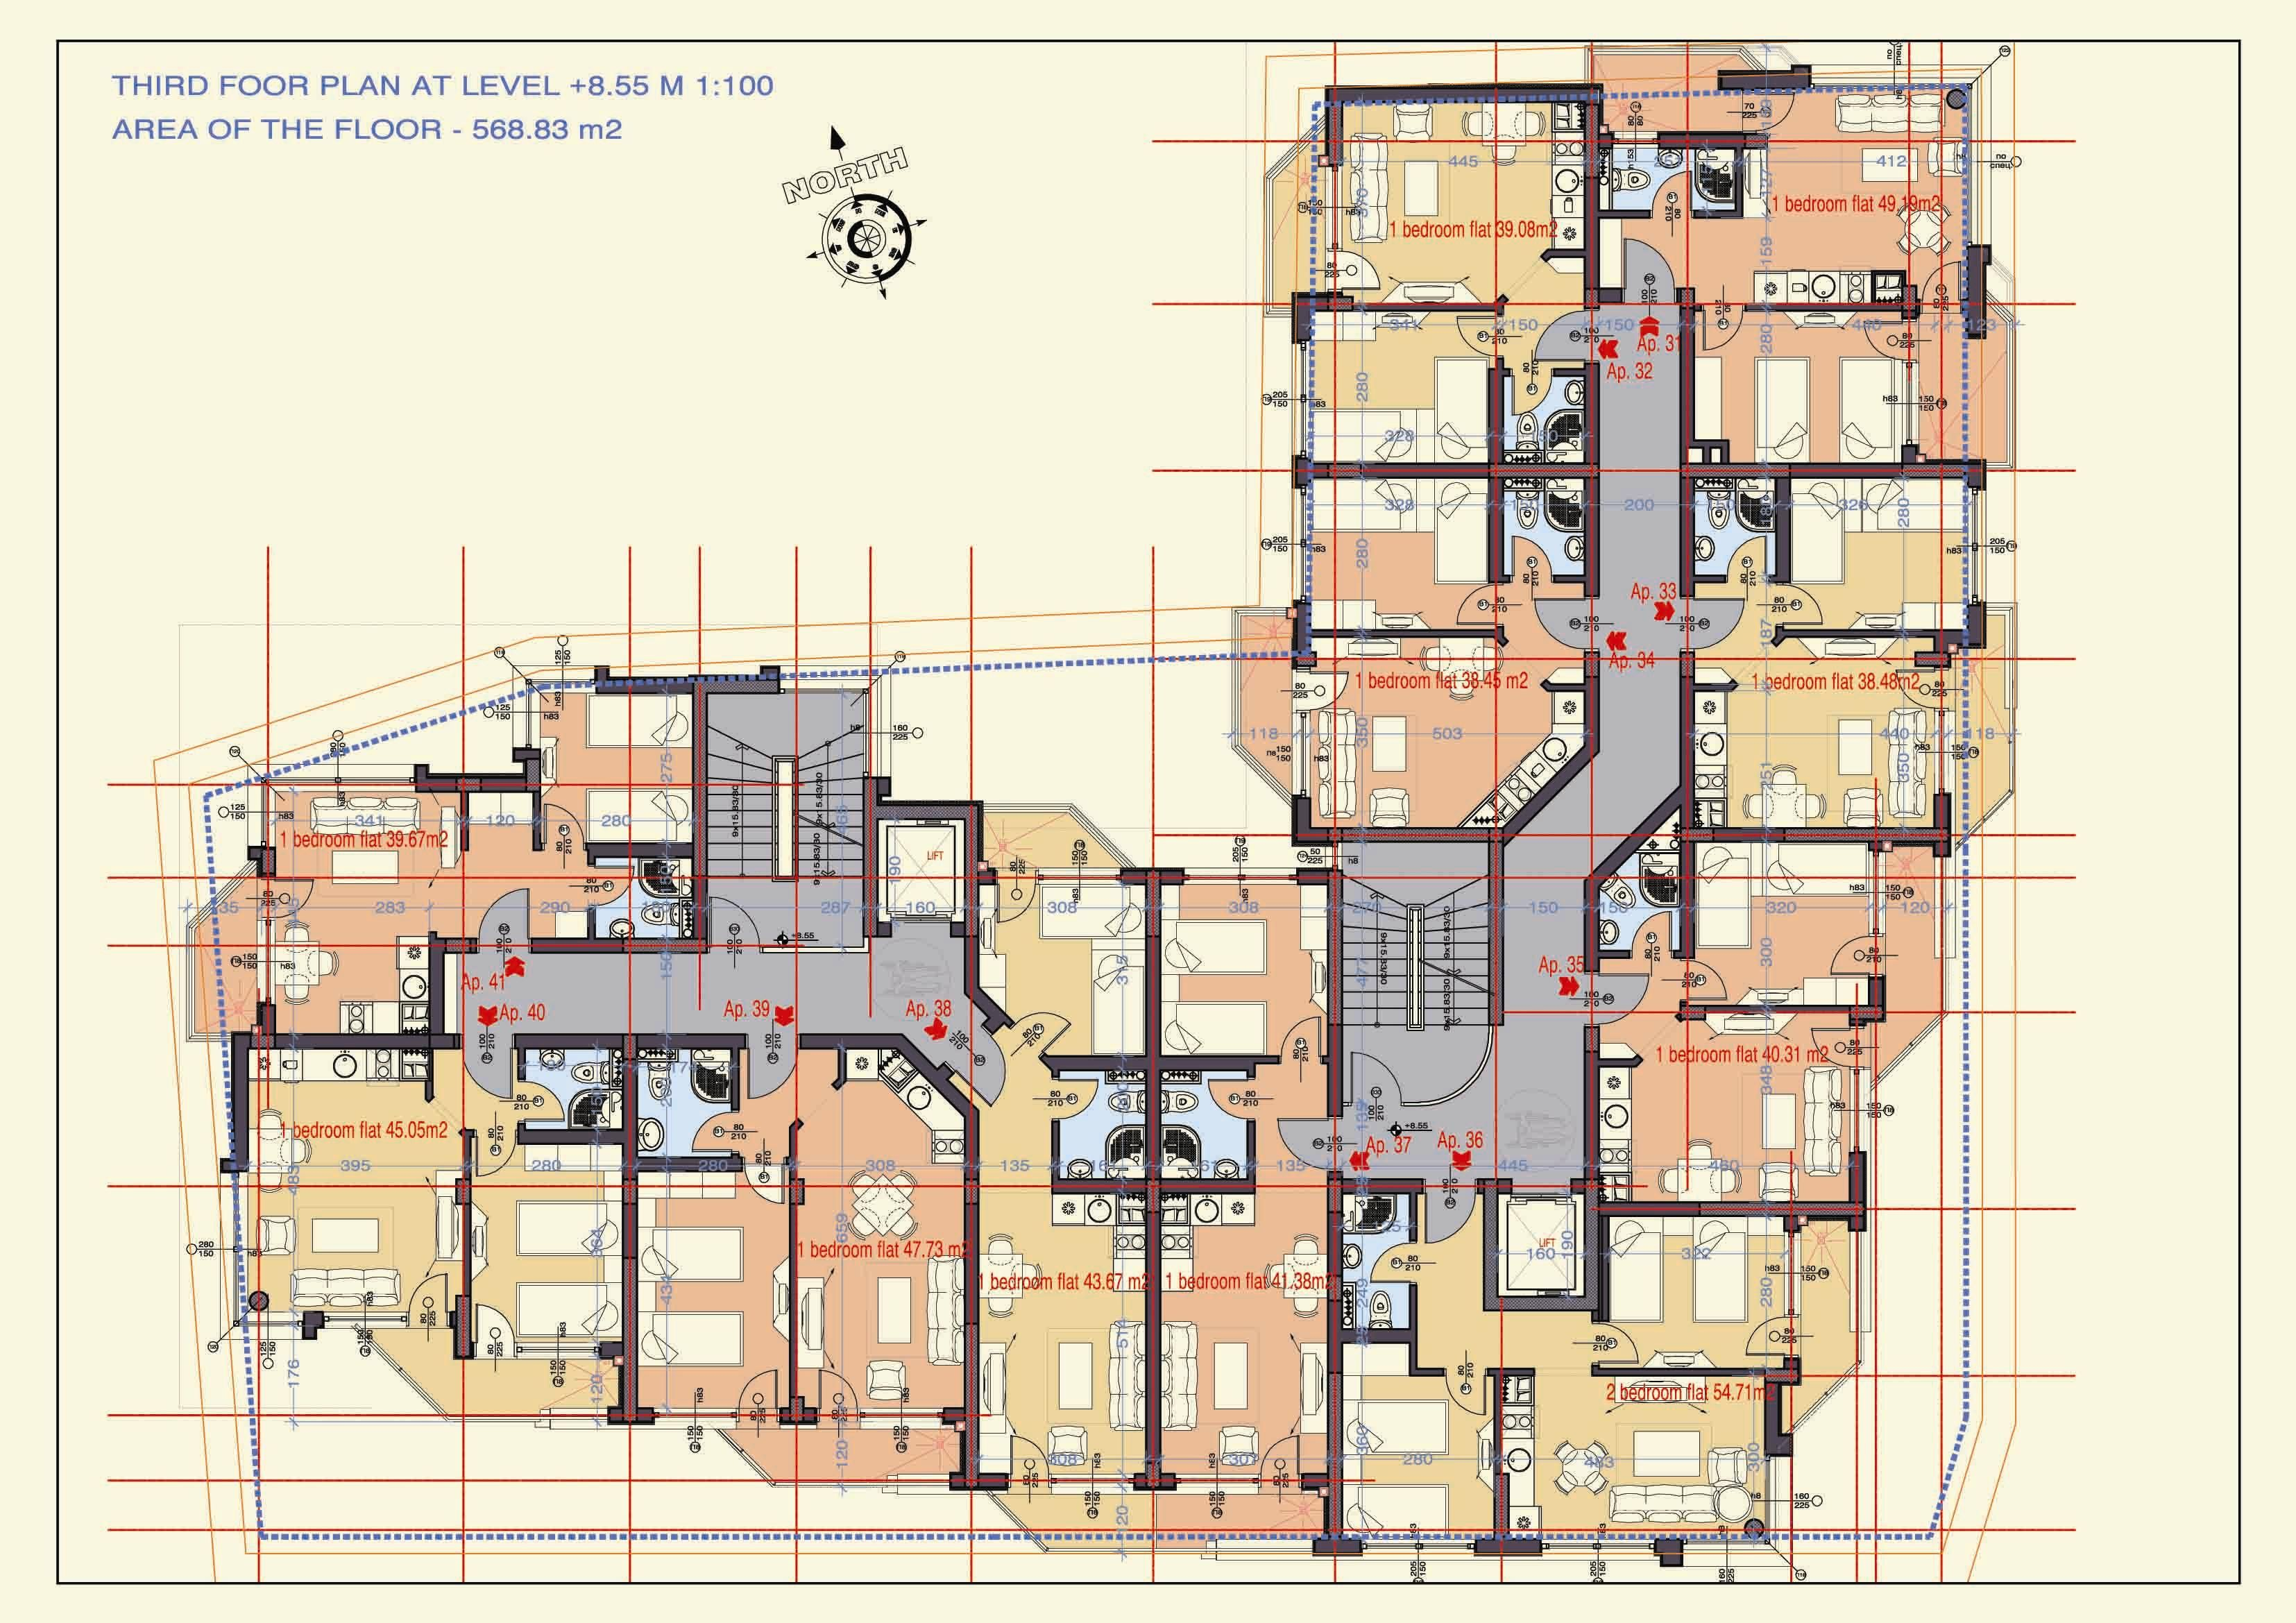 5 star hotel room floor plans 5 star hotel floor plans pdf for Apartment hotel plans